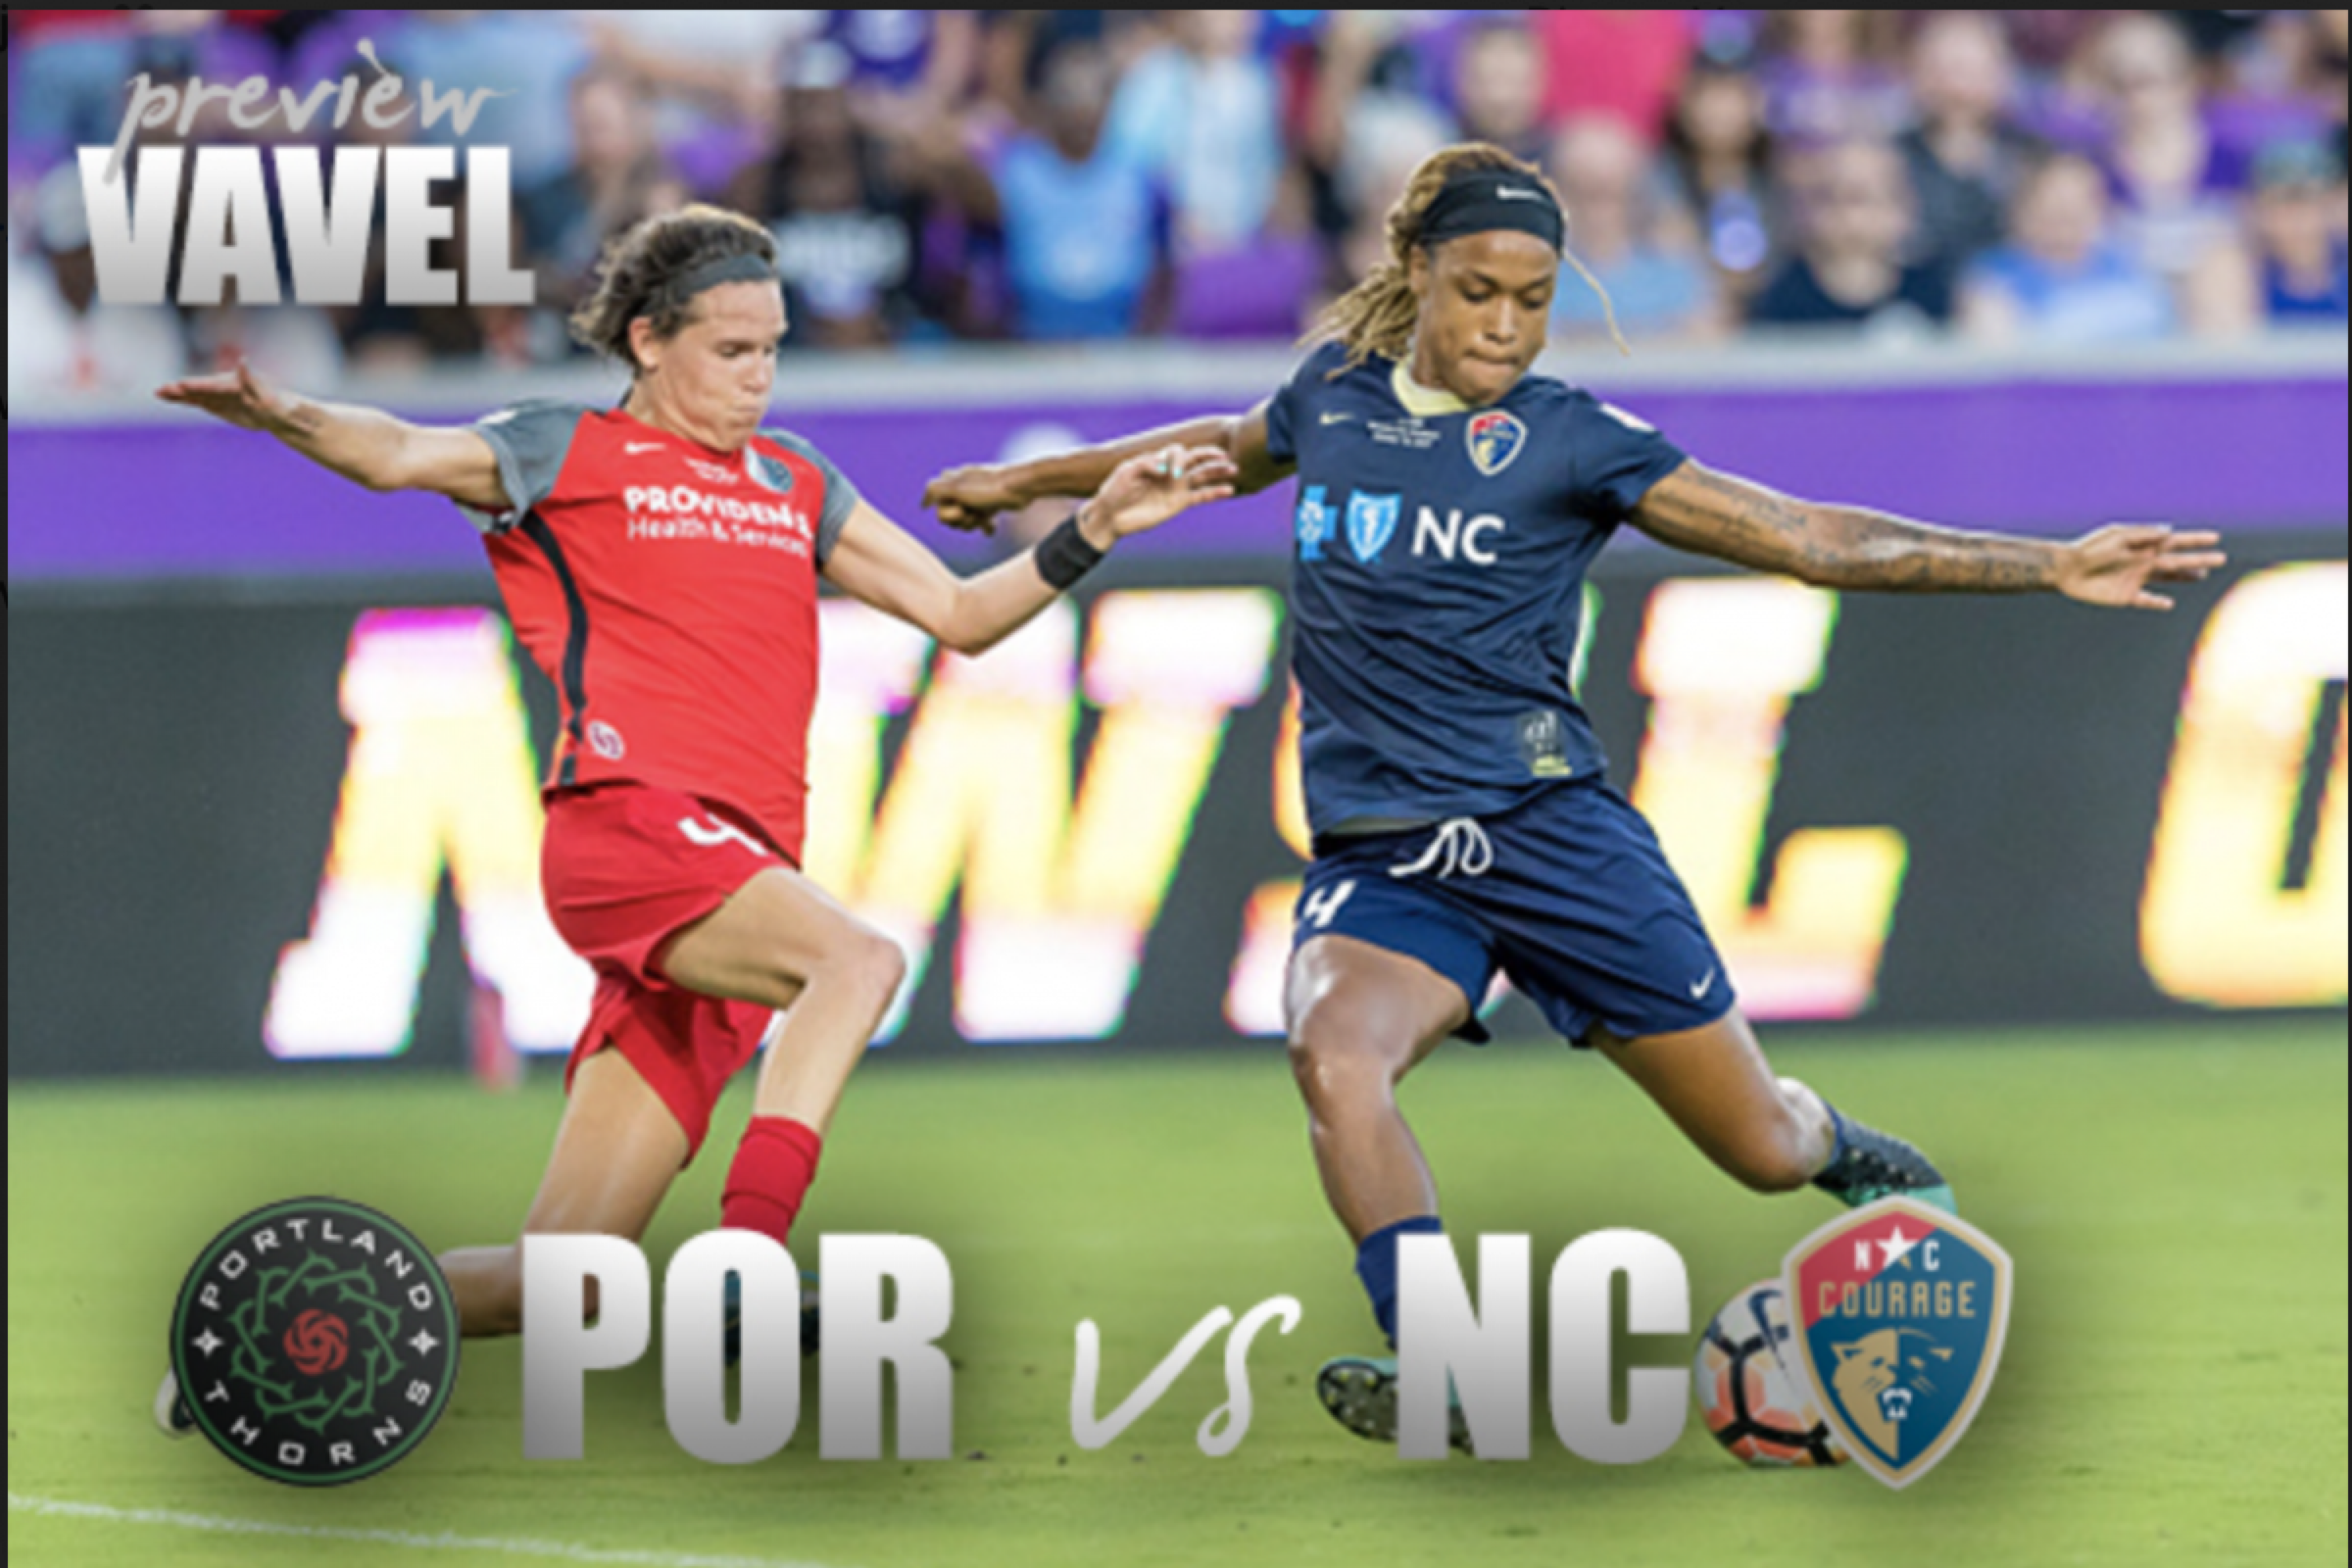 North Carolina Courage vs Portland Thorns FC preview: The rematch takes center stage in the NWSL